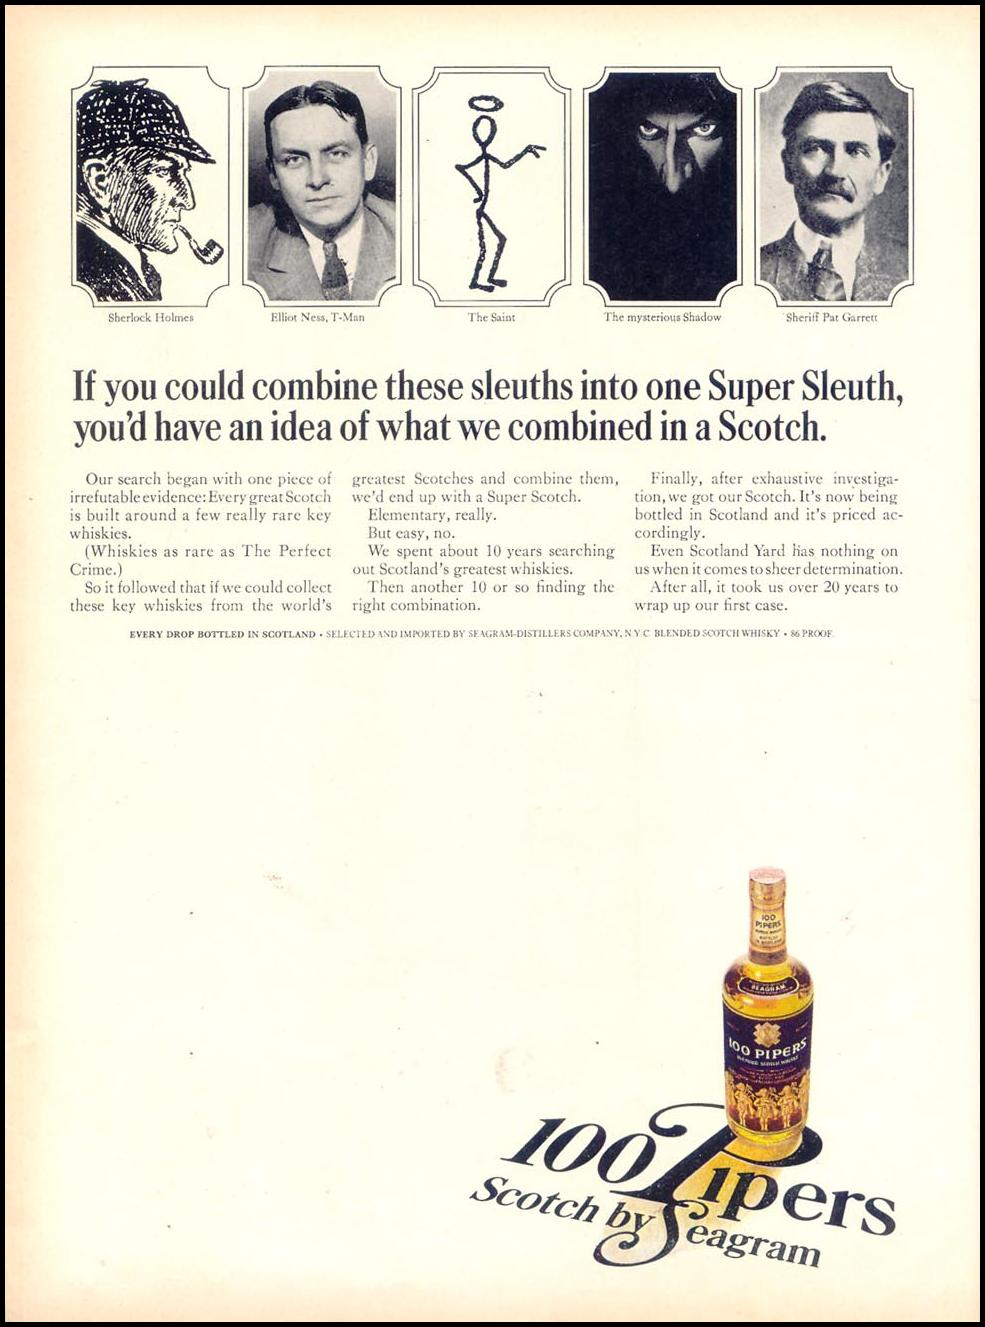 100 PIPERS SCOTCH TIME 03/11/1966 p. 62